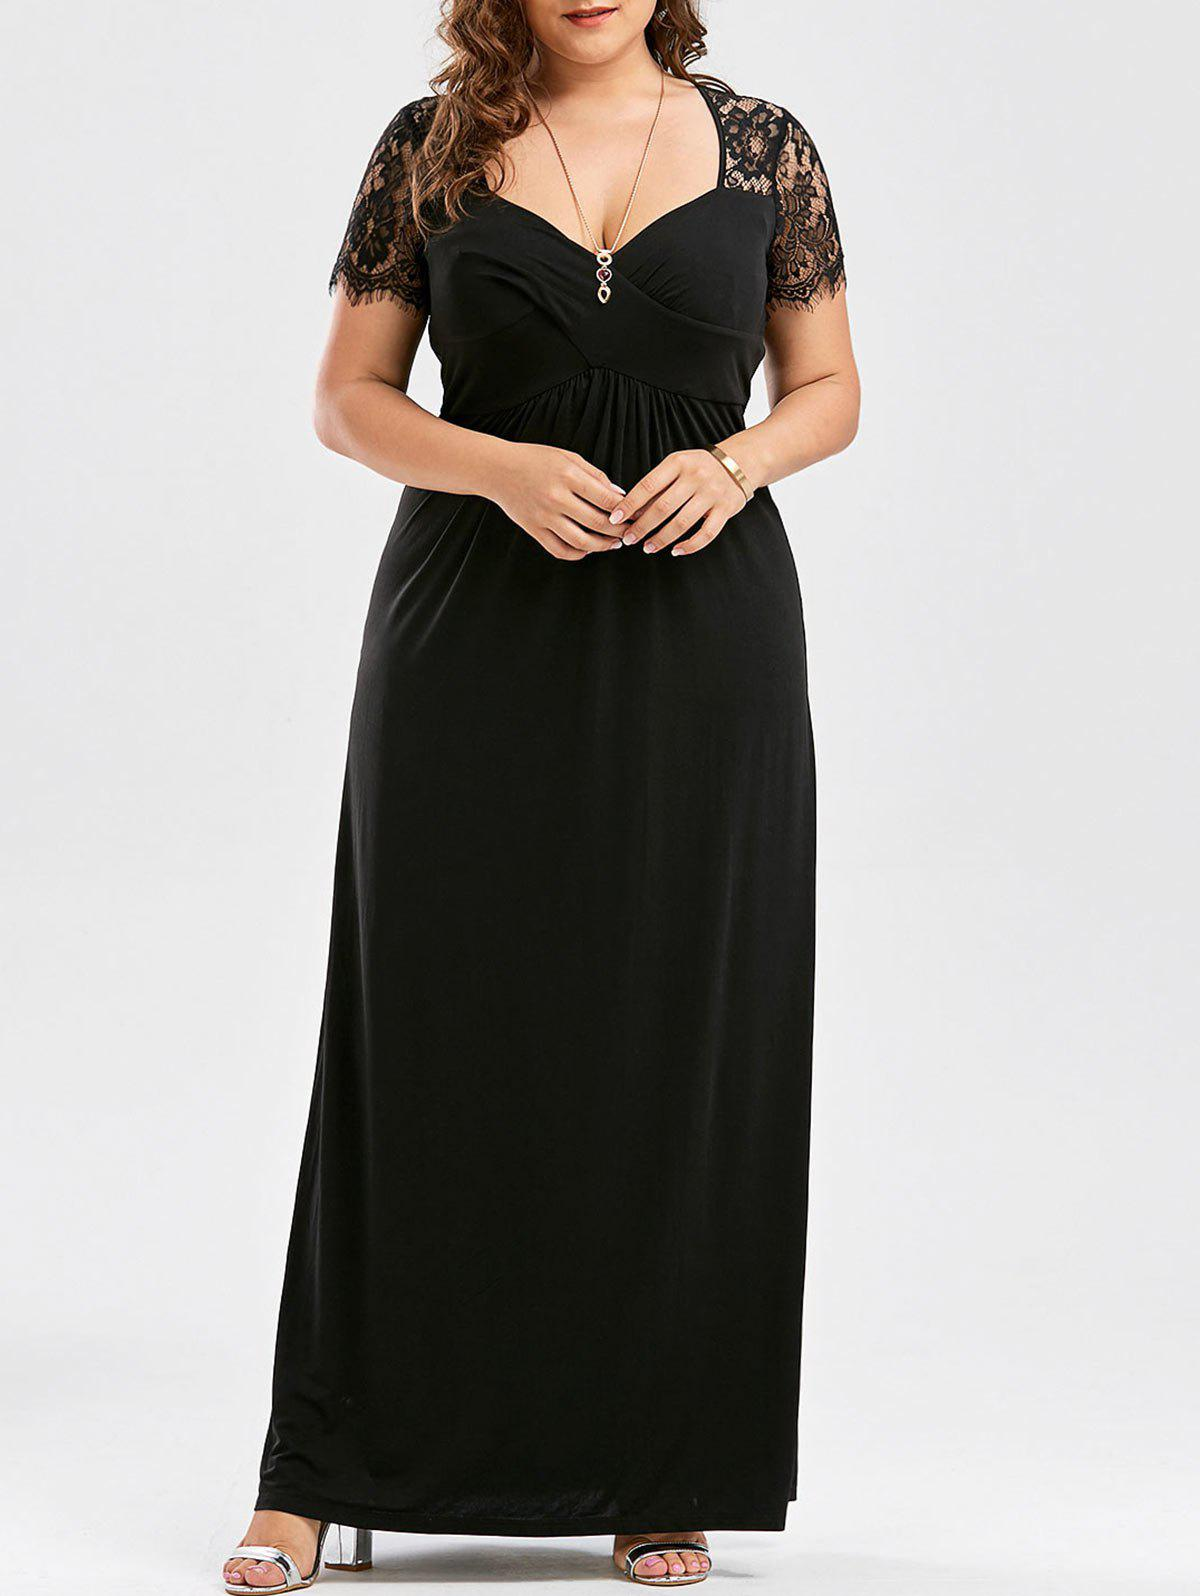 Lace Panel Plus Size Sweetheart Formal DressWOMEN<br><br>Size: XL; Color: BLACK; Style: Brief; Material: Polyester,Spandex; Silhouette: Straight; Dresses Length: Floor-Length; Neckline: Sweetheart Neck; Sleeve Length: Short Sleeves; Waist: Empire; Embellishment: Lace; Pattern Type: Solid Color; With Belt: No; Season: Summer; Weight: 0.5400kg; Package Contents: 1 x Dress;